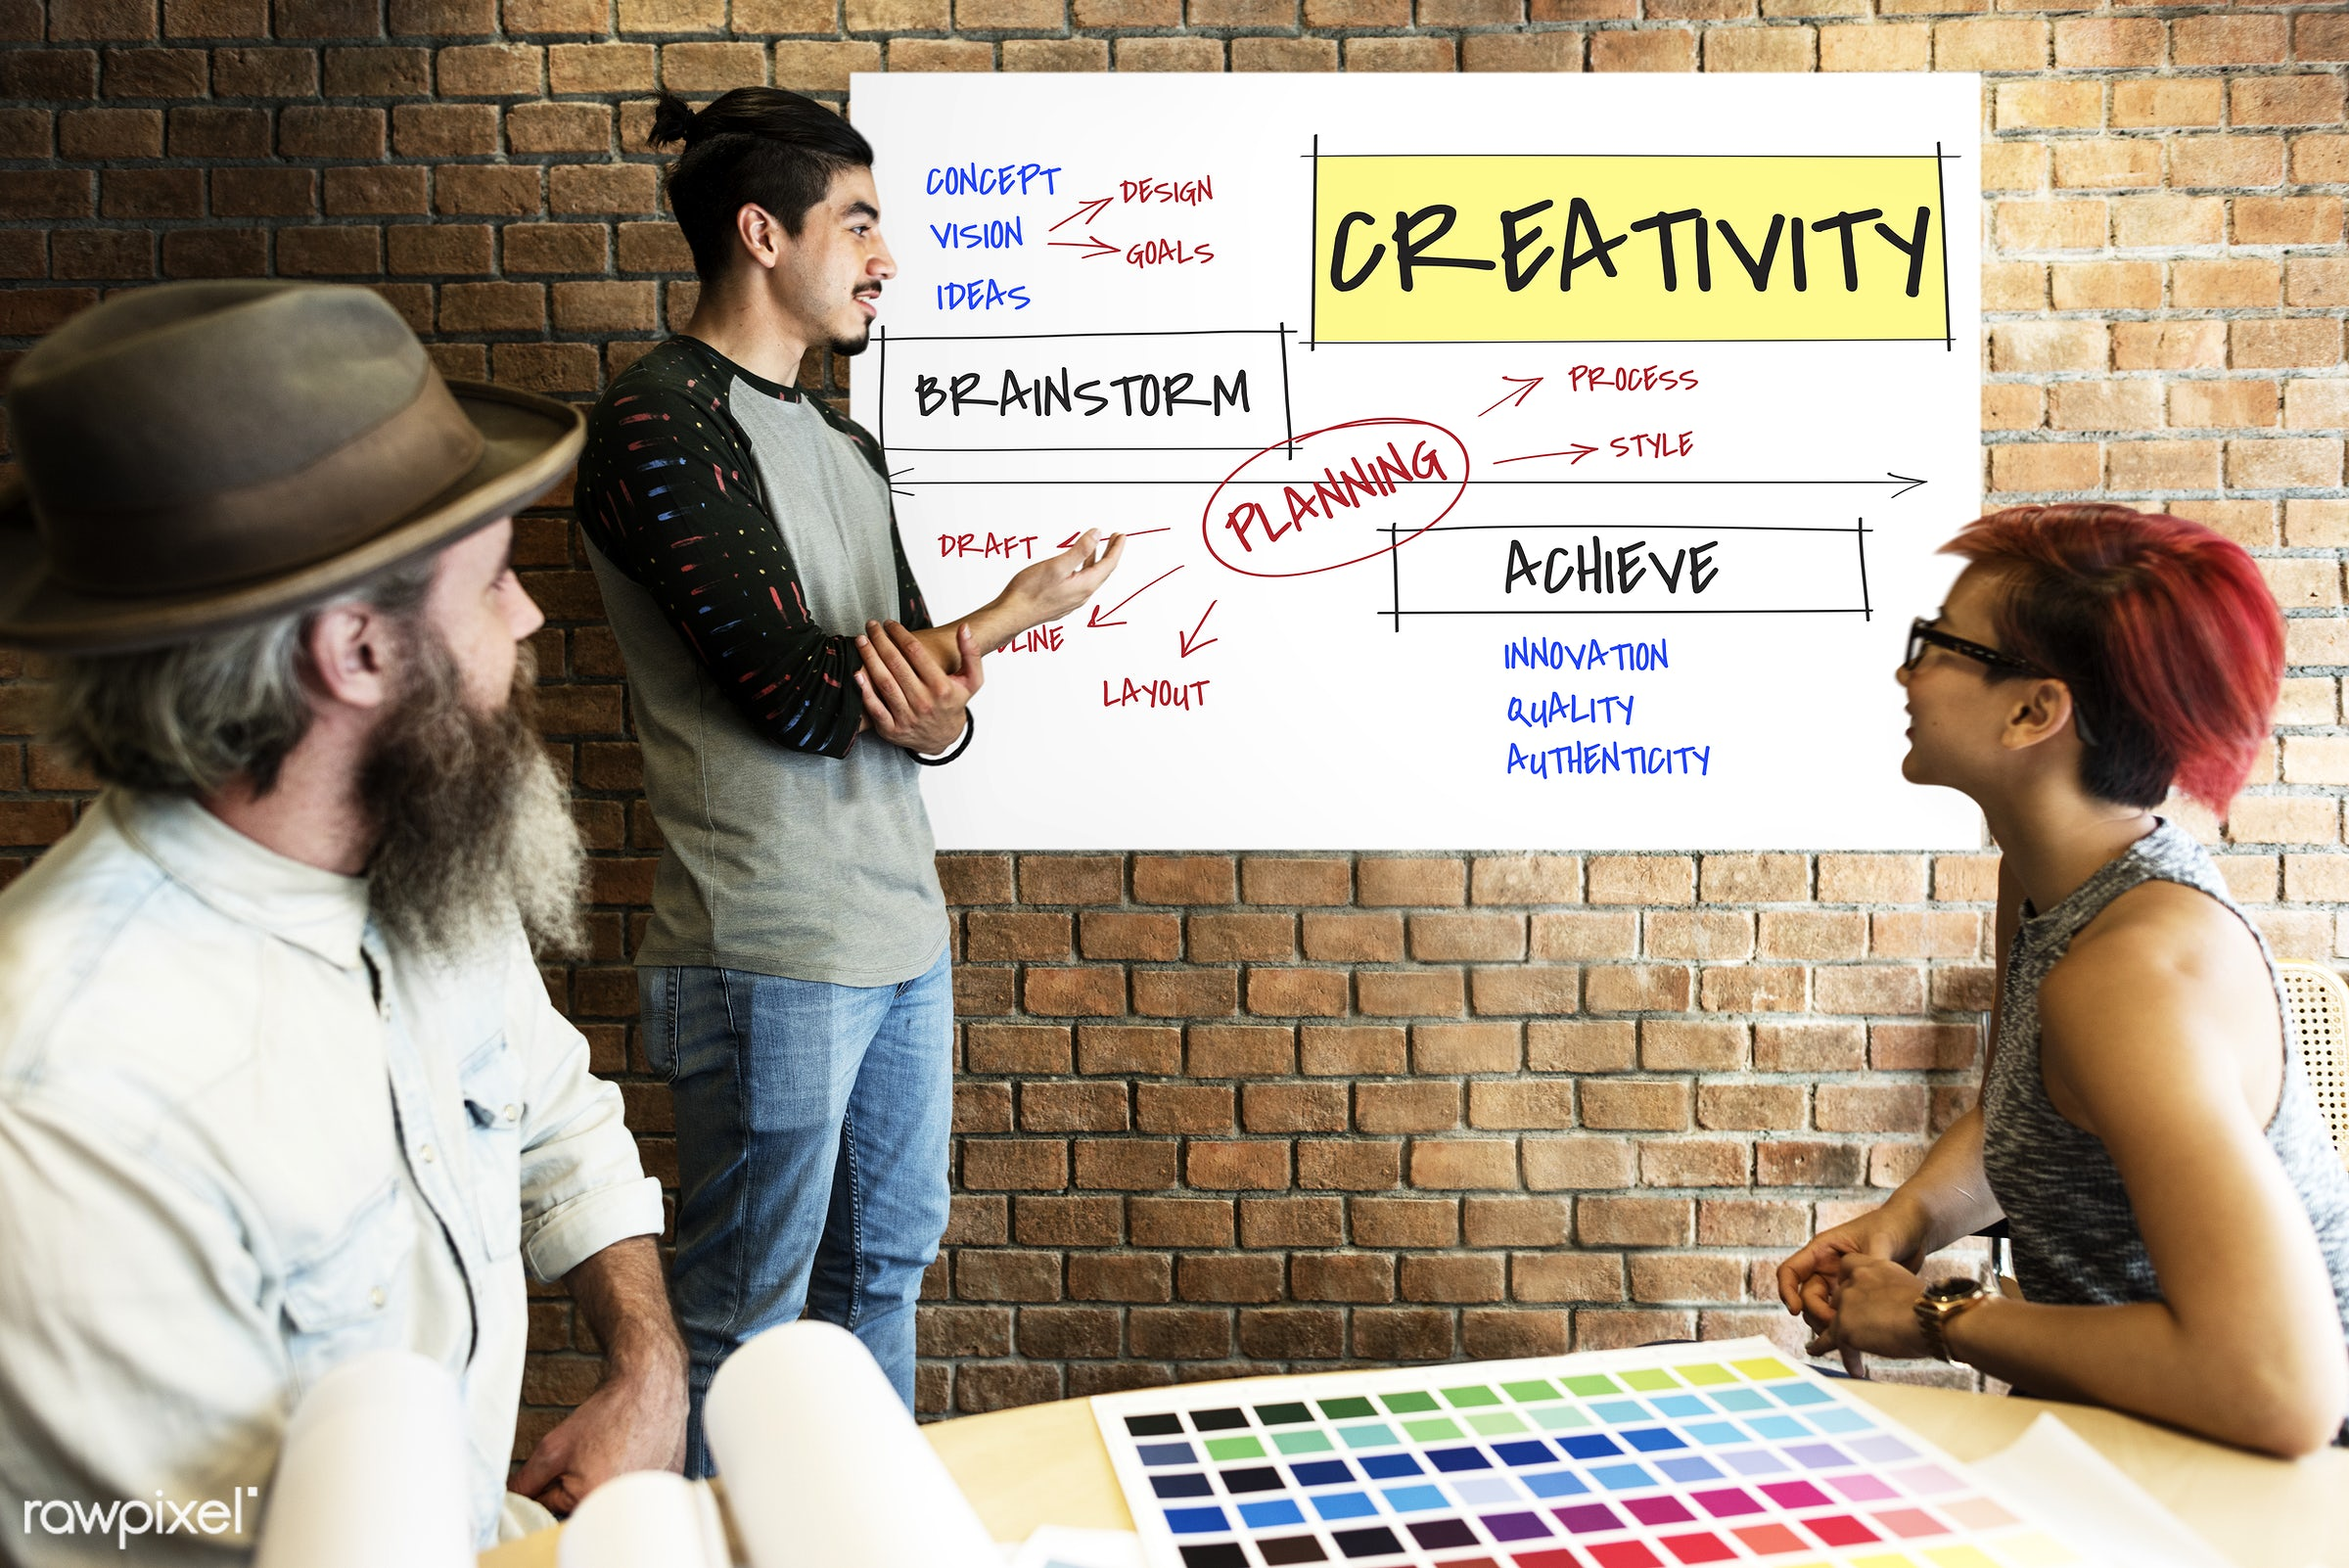 achieve, art, authenticity, beard, board, brainstorm, brick wall, chart, college, color chart, colors, concept, creative,...